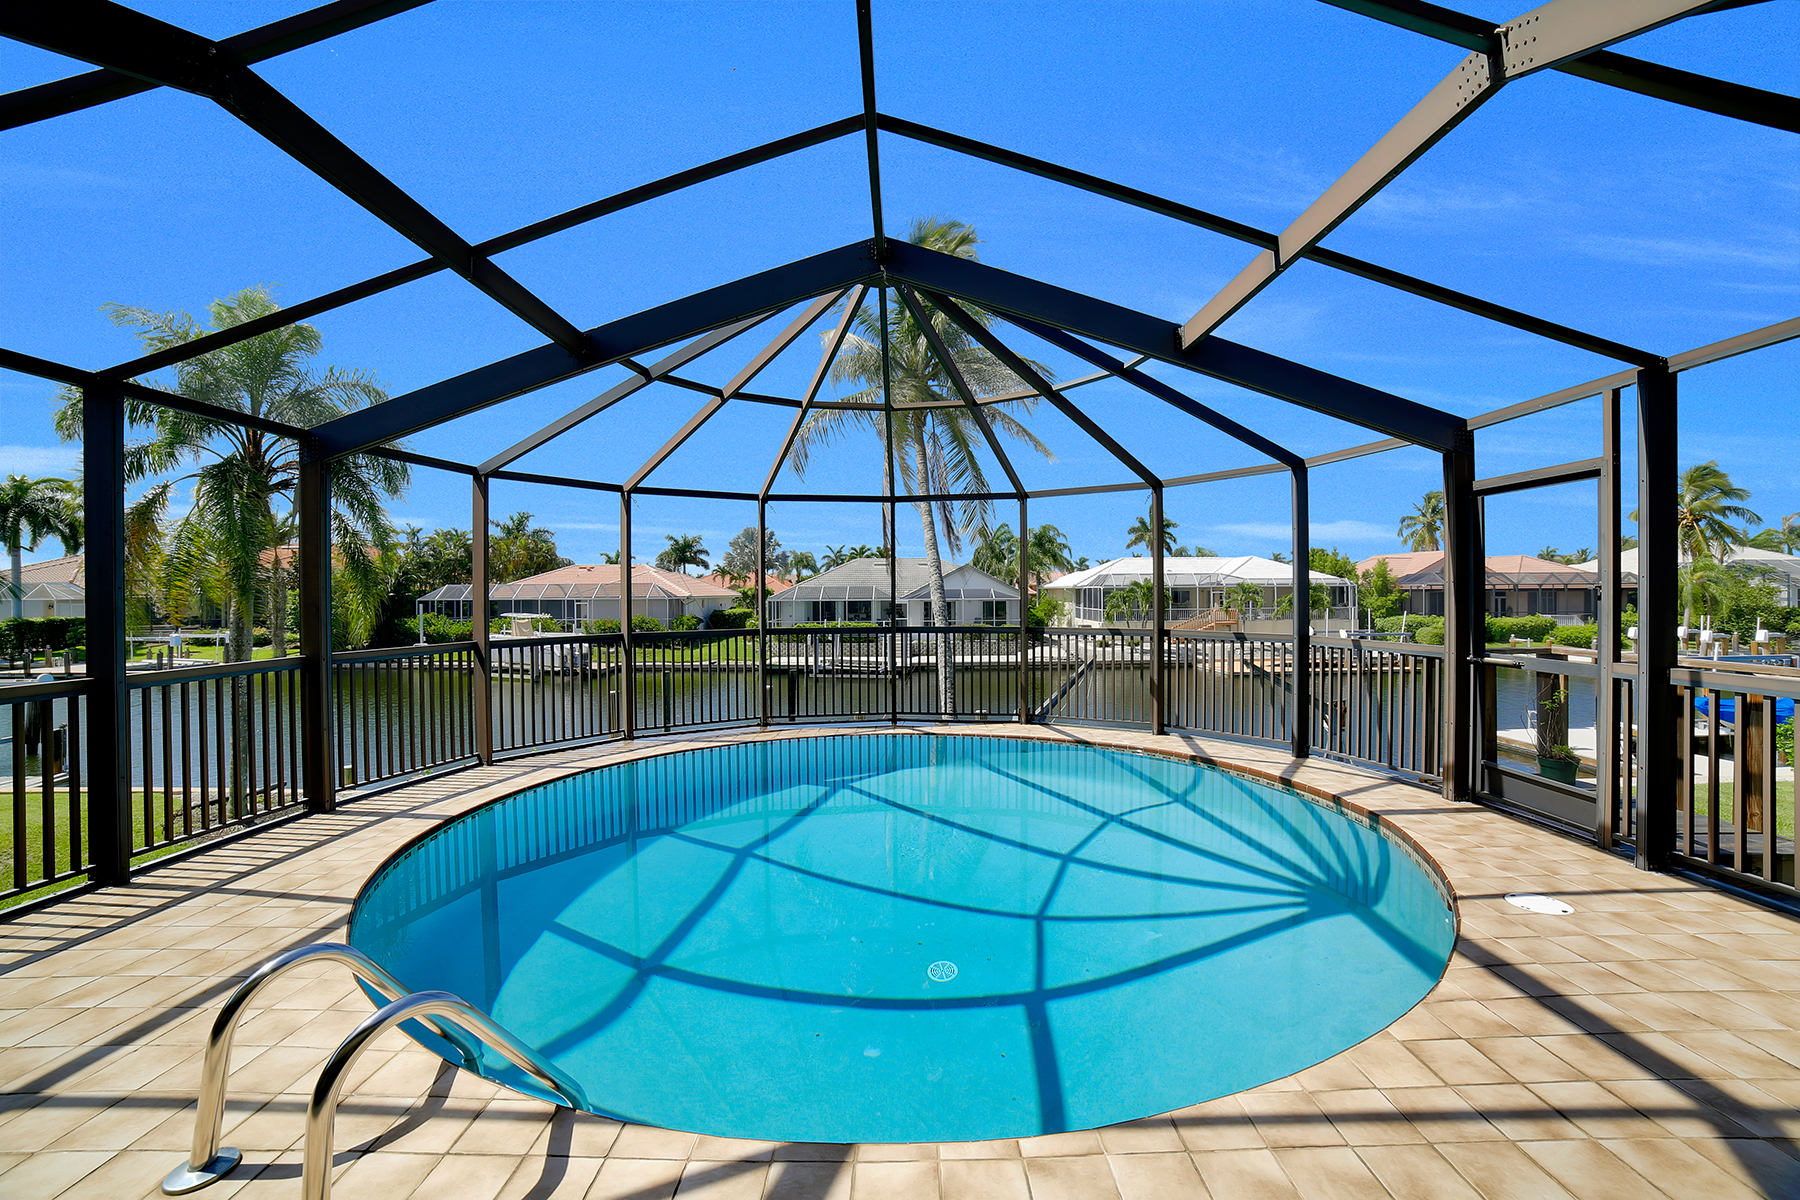 Single Family Home for Sale at MARCO ISLAND 1149 Bond Ct, Marco Island, Florida 34145 United States